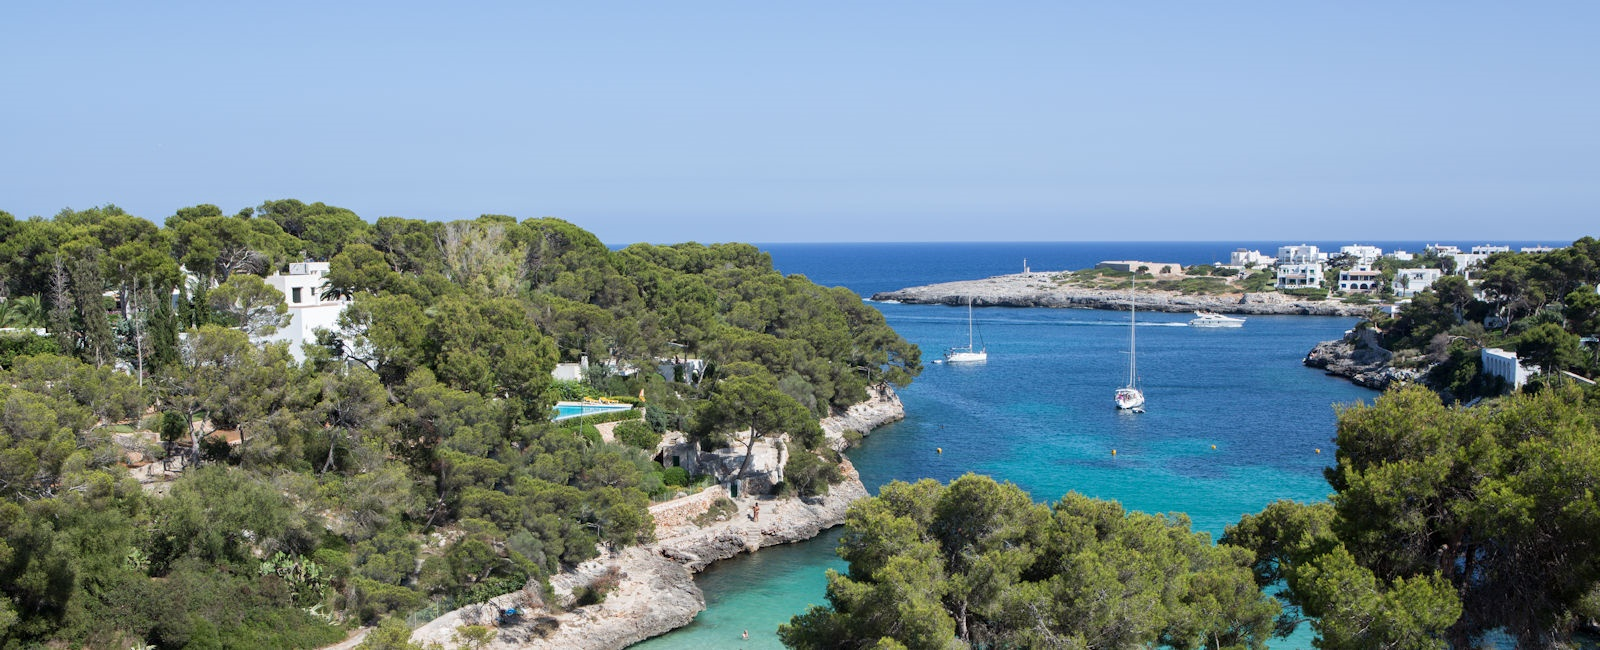 Luxury Cala d'Or holidays